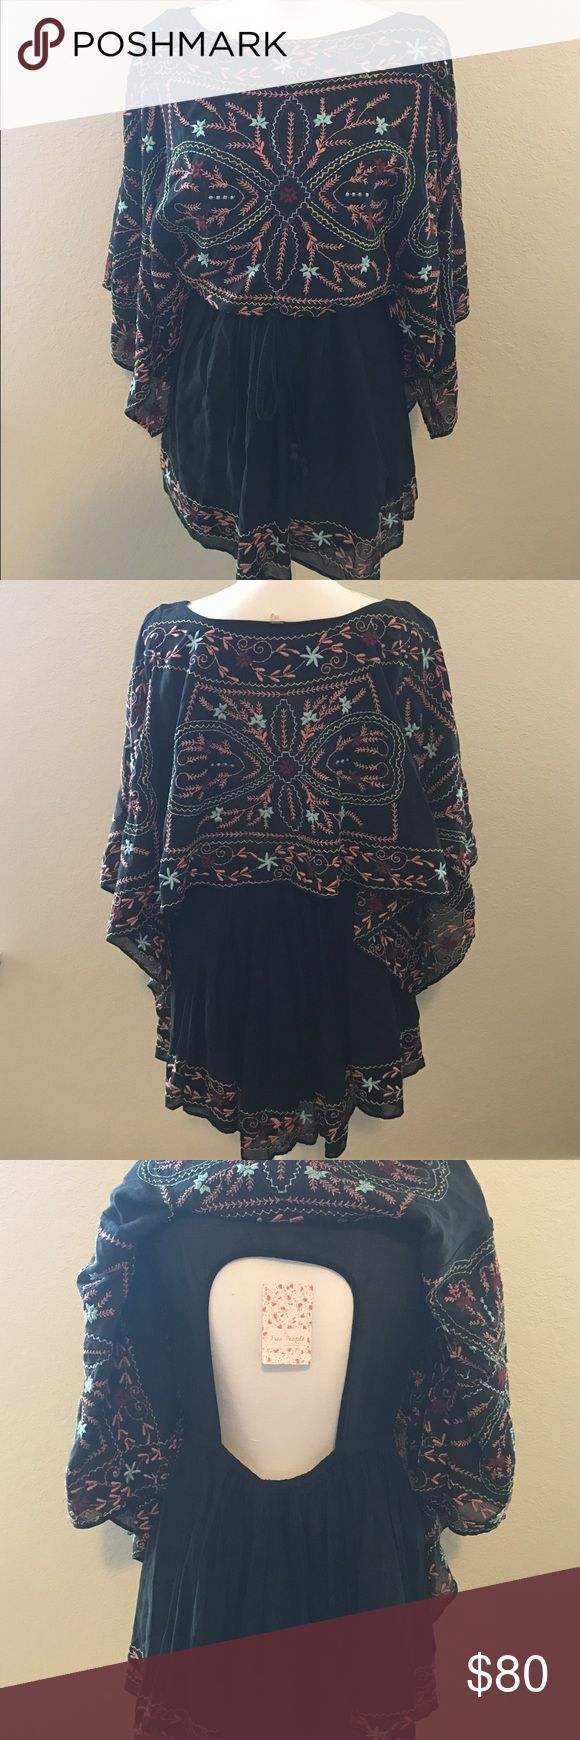 Selling this NWT Free People Black Frida Embroidered Dress XS on Poshmark! My username is: laurynd. #shopmycloset #poshmark #fashion #shopping #style #forsale #Free People #Dresses & Skirts